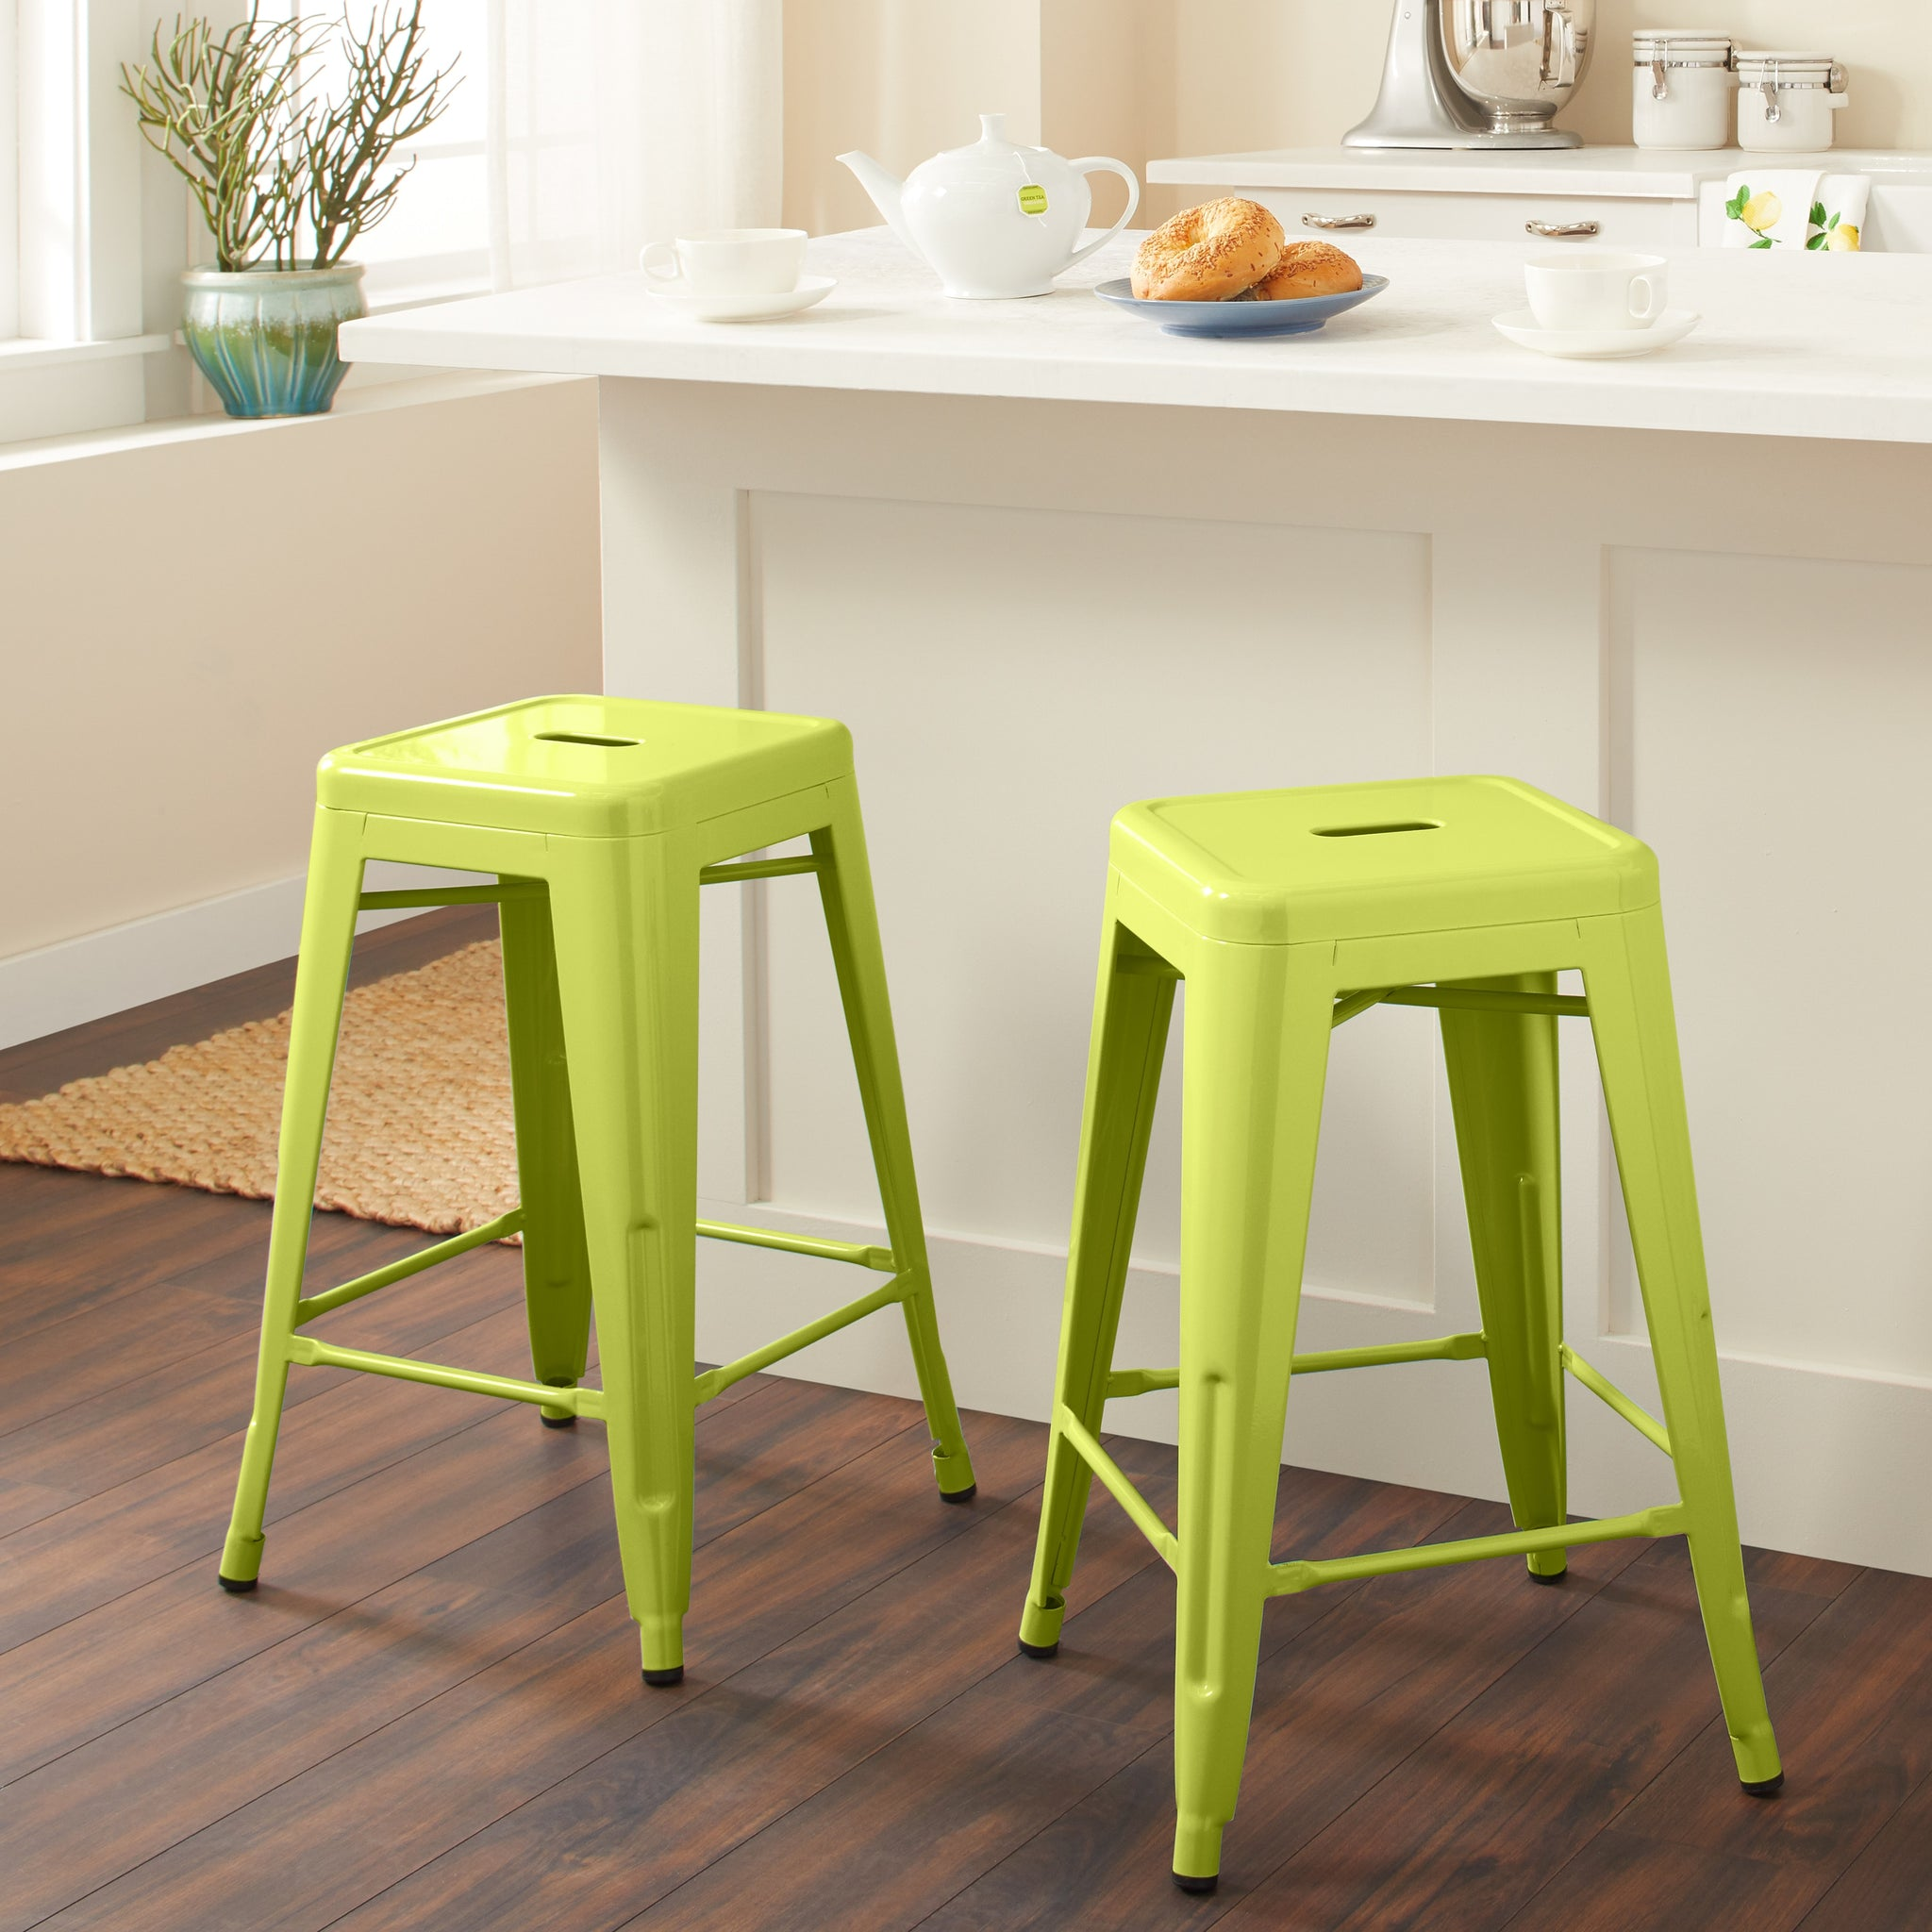 24-inch Limeade Metal Counter Stools (Set of 2)